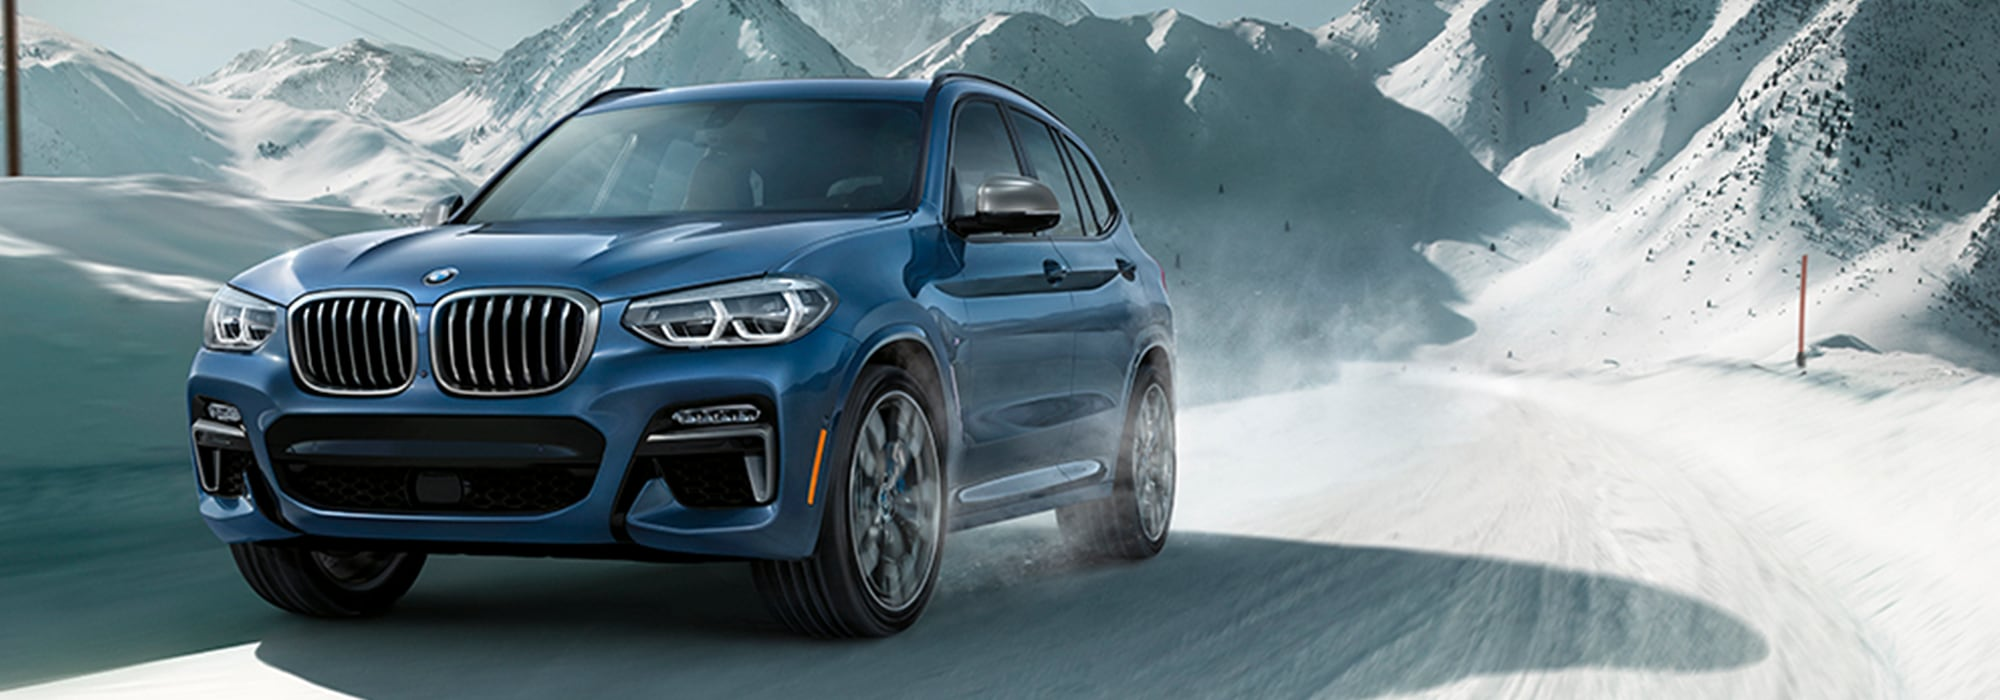 2019 Bmw X Series Karl Knuaz Bmw Bmw Dealer Near Me